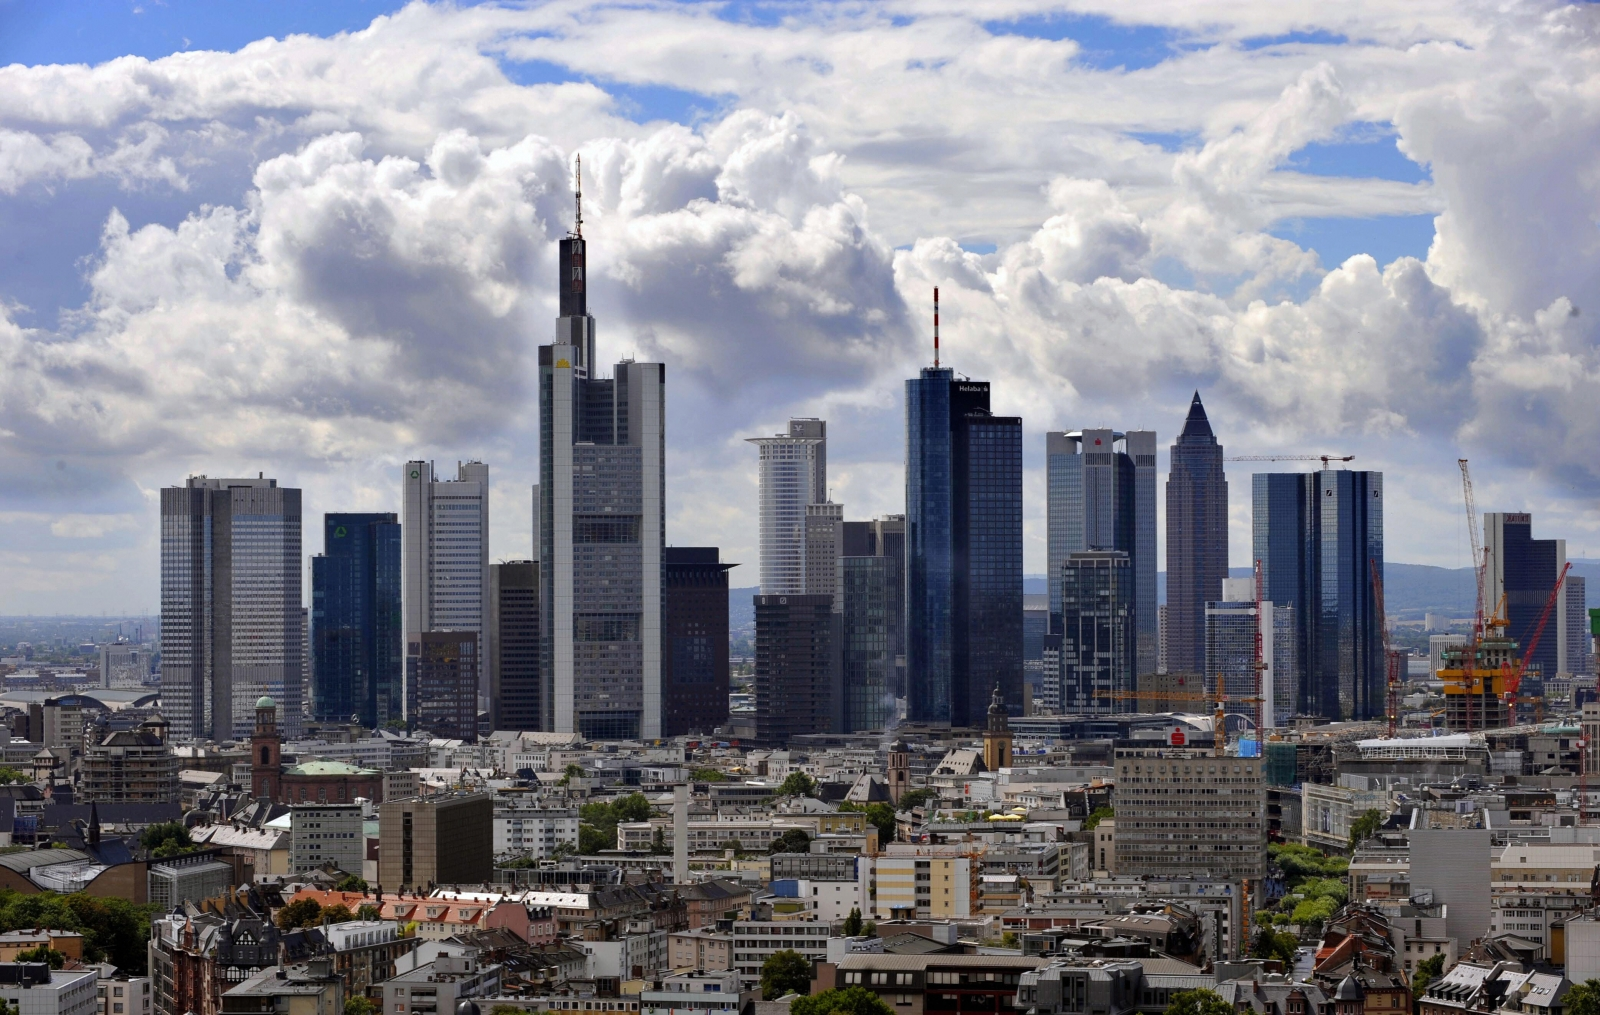 Clouds hang over Frankfurt's banking district